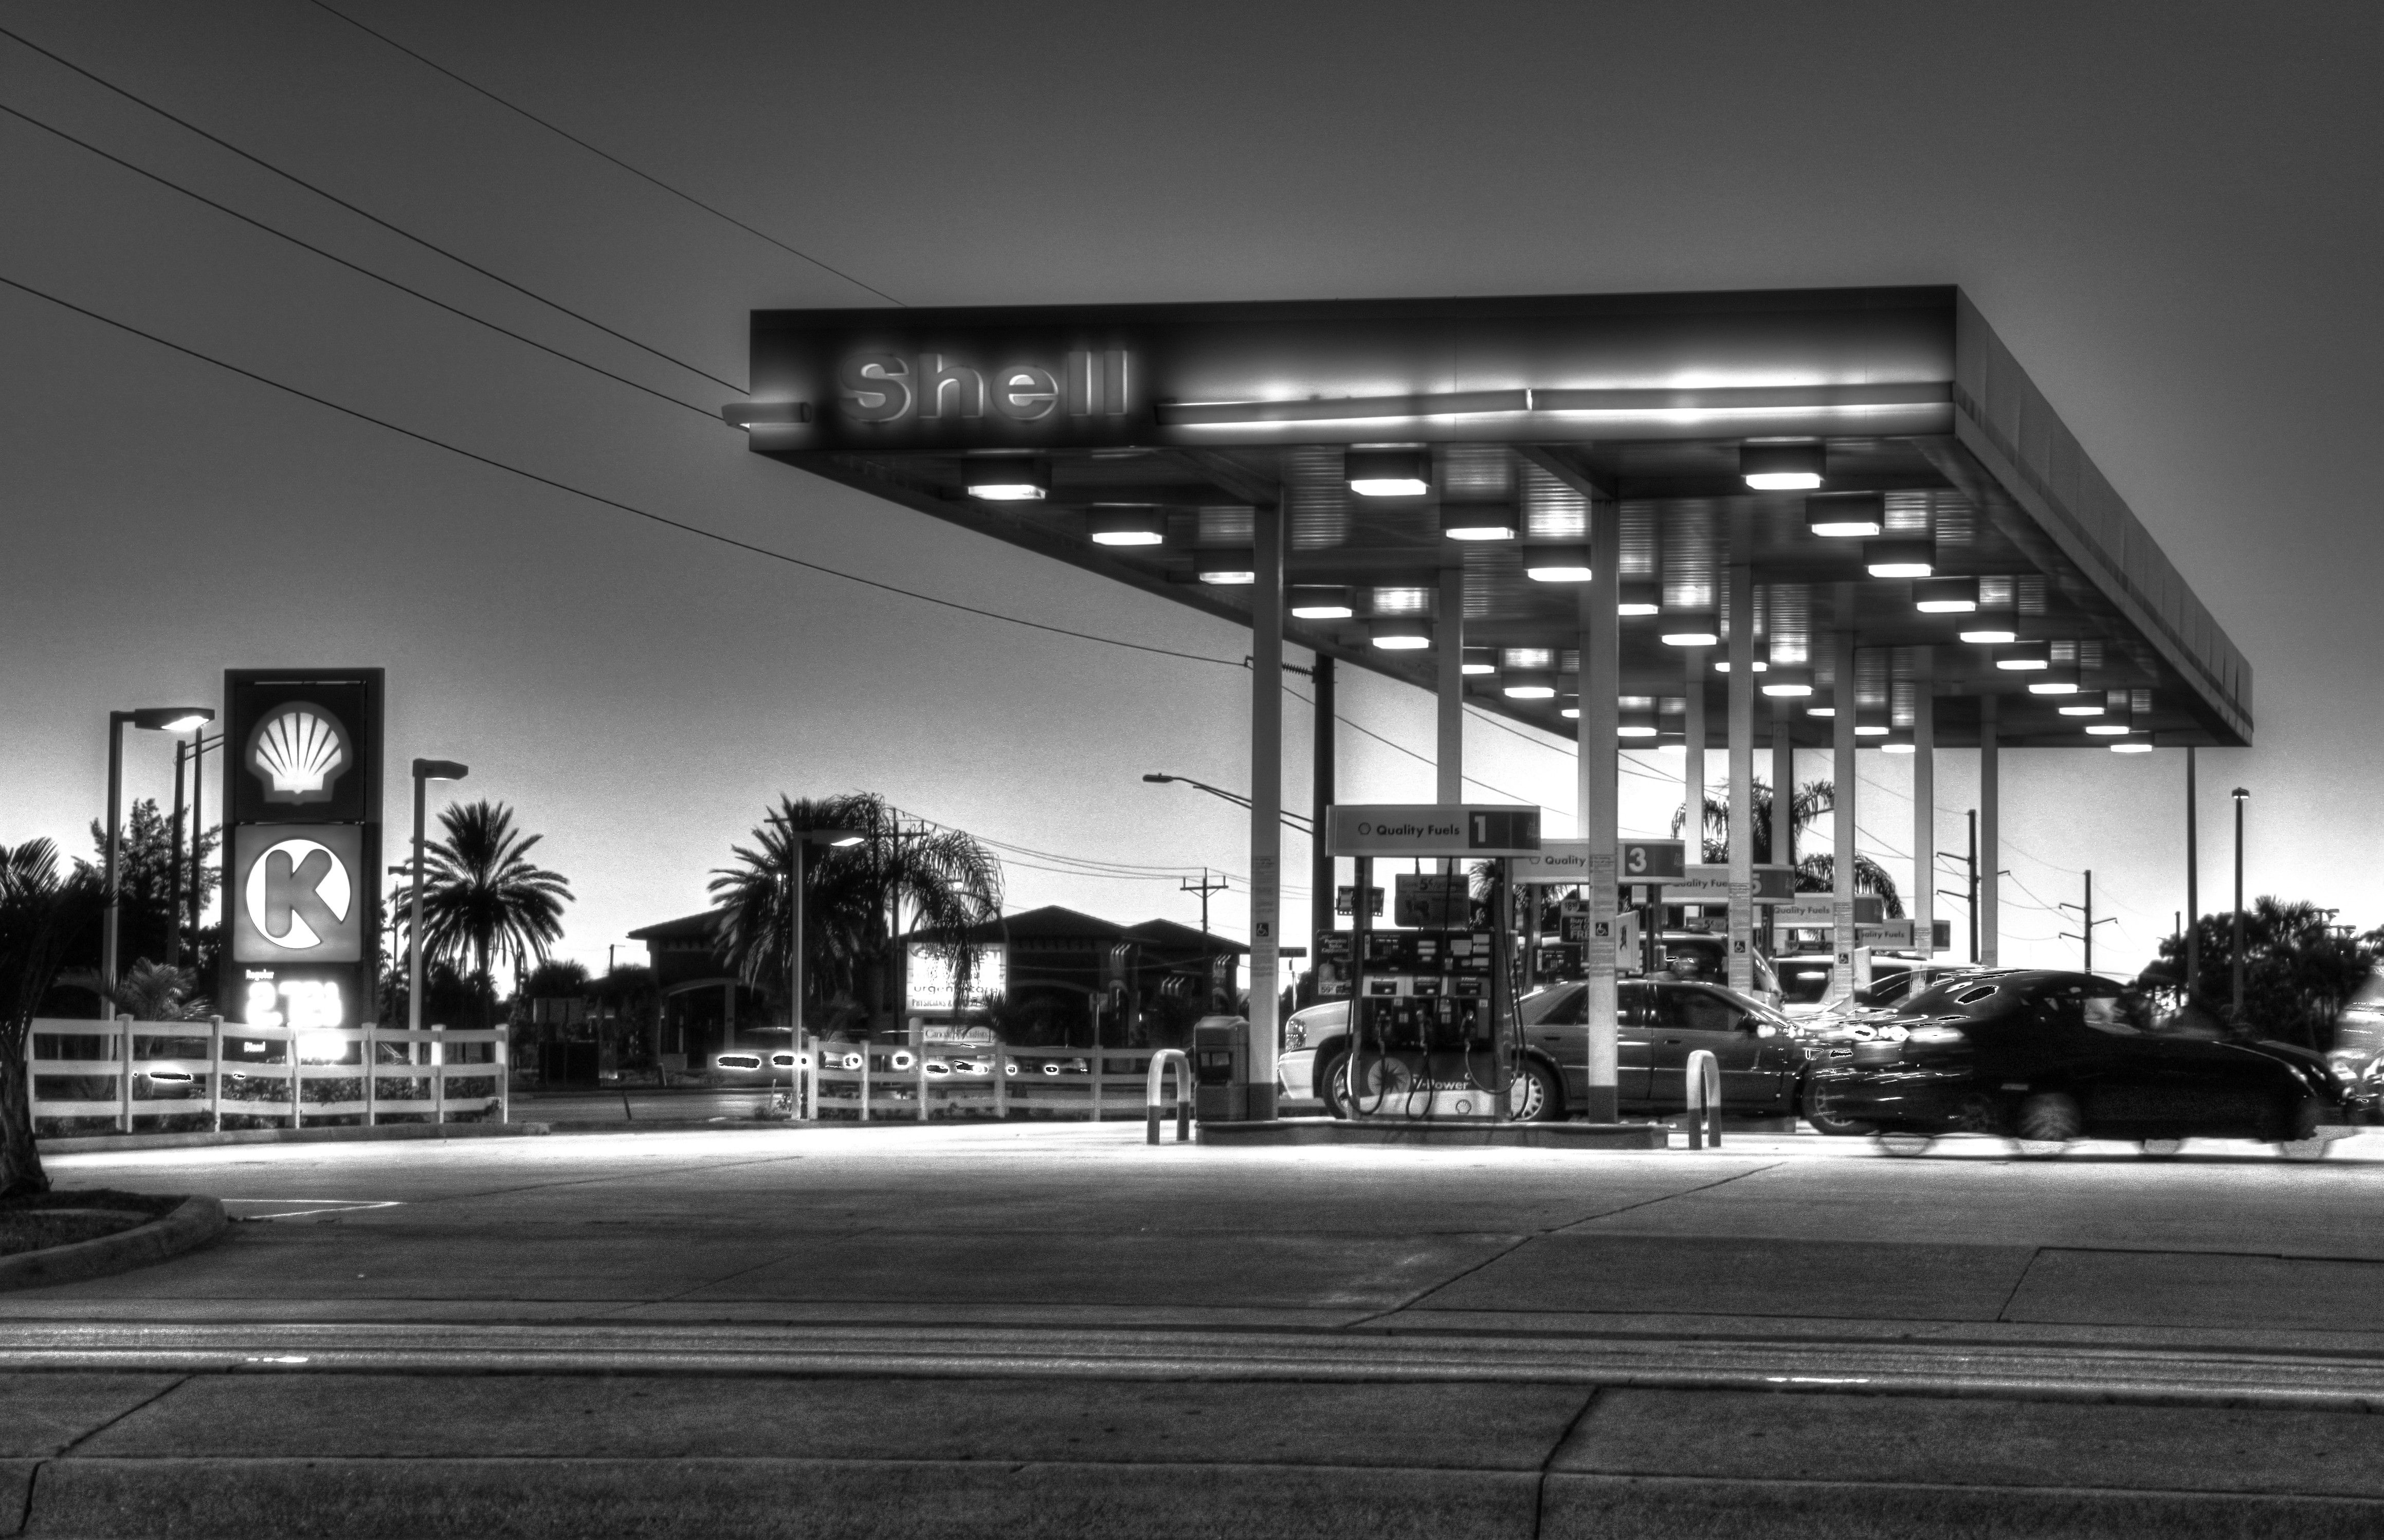 This is my favoutite gas station in Cape Coral, FL. It looks like this every evening. Well, nearly, the Shell folks did not paint it b/w, that was me.